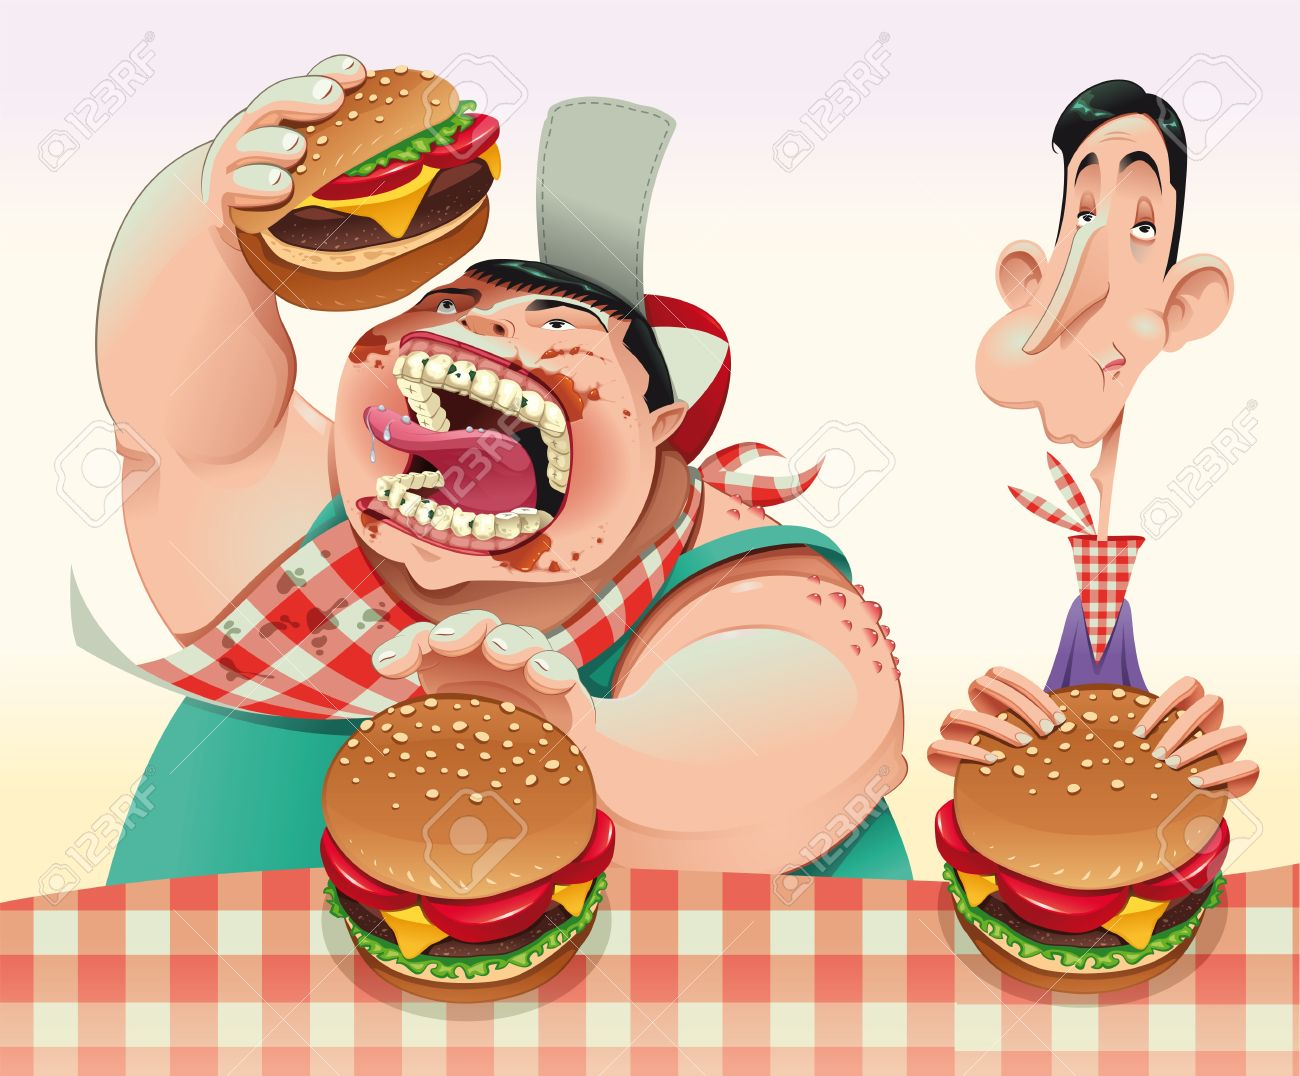 Guys with hamburgers. Cartoon and vector illustration. Stock Vector - 10763055